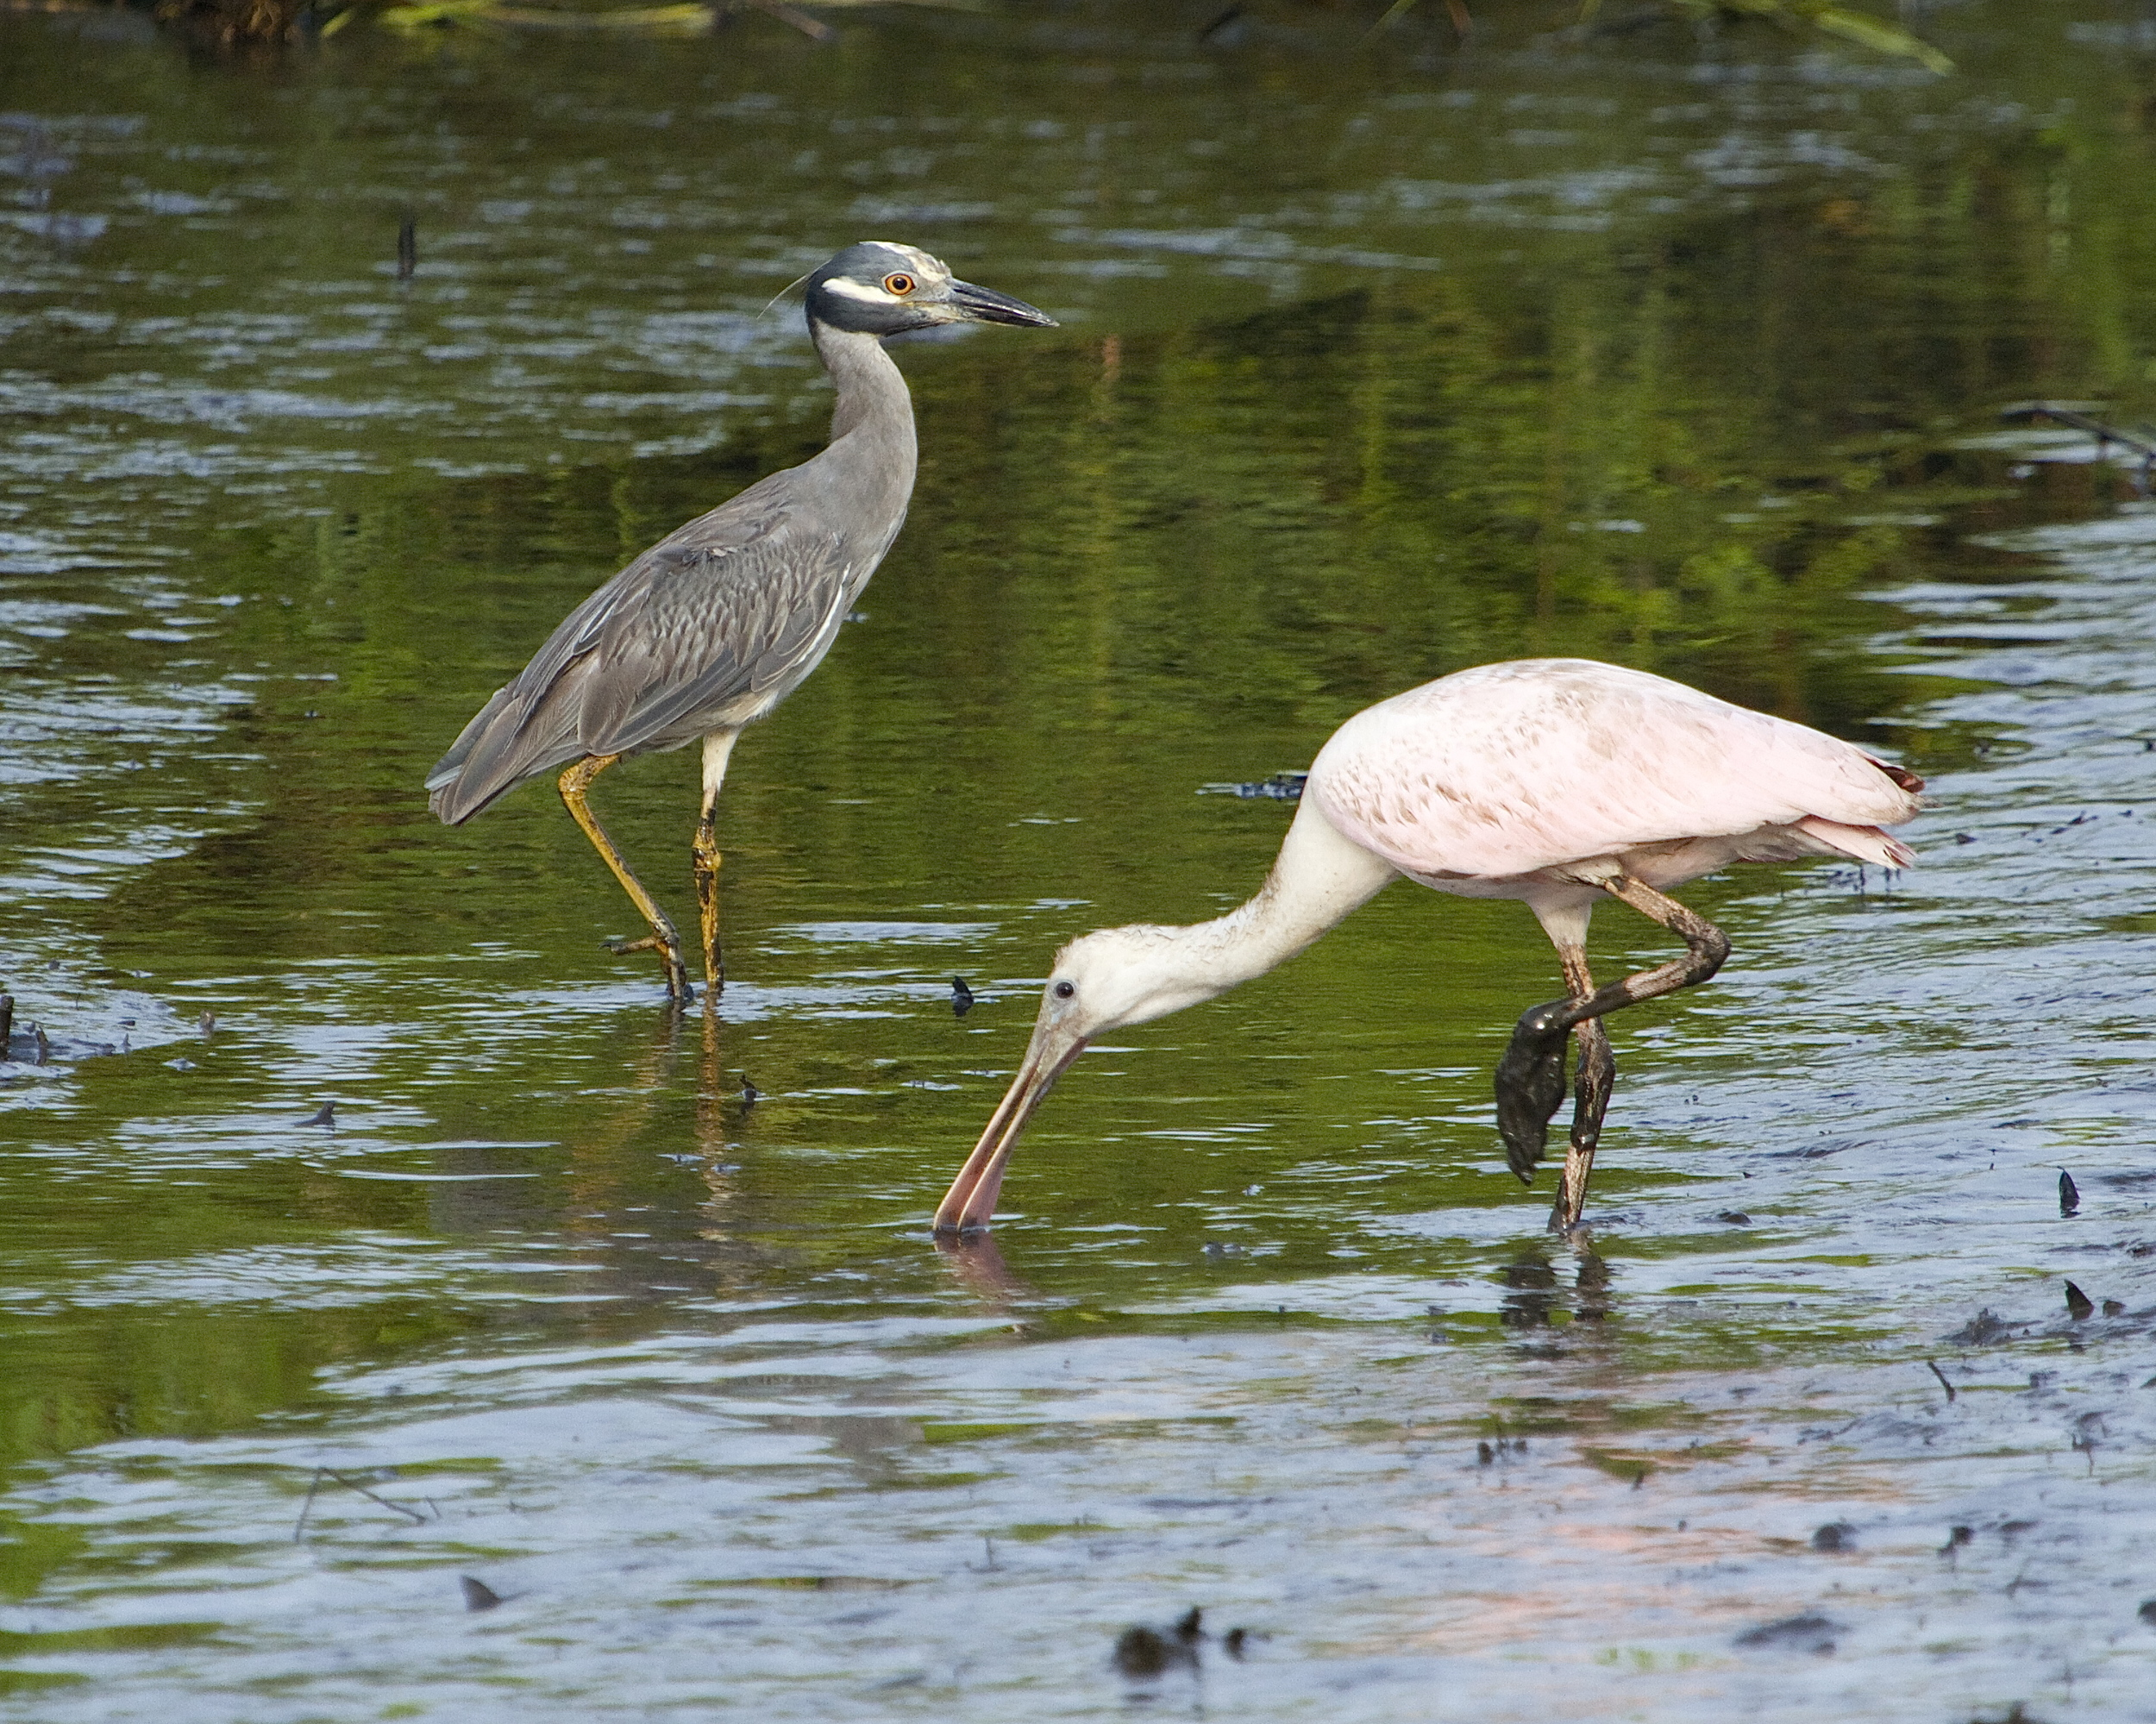 You have to be a real TOUGH MUDDER to make it on the Broward. George and this Roseate Spoonbill are not afraid to get down and dirty. IT just isn't pretty no matter how you take the picture though.